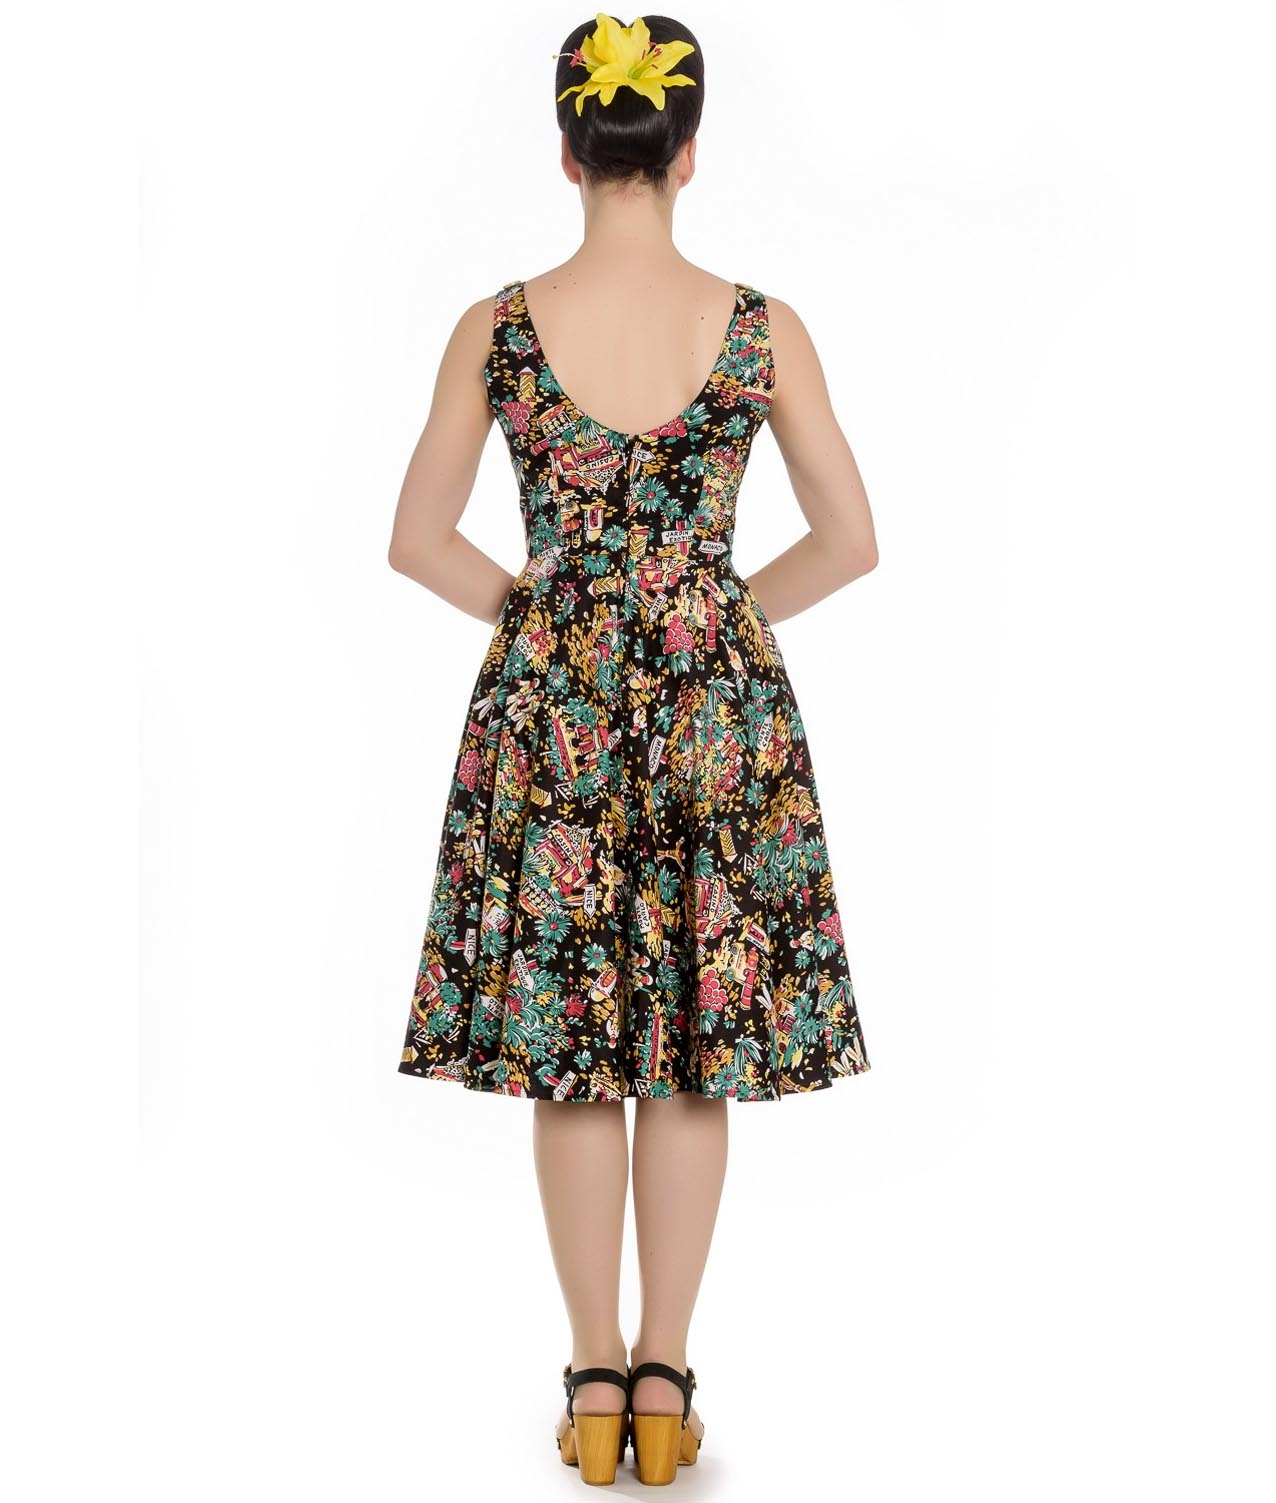 Hell-Bunny-Summer-50s-Black-Dress-MONTE-CARLO-Tropical-Holiday-All-Sizes thumbnail 23